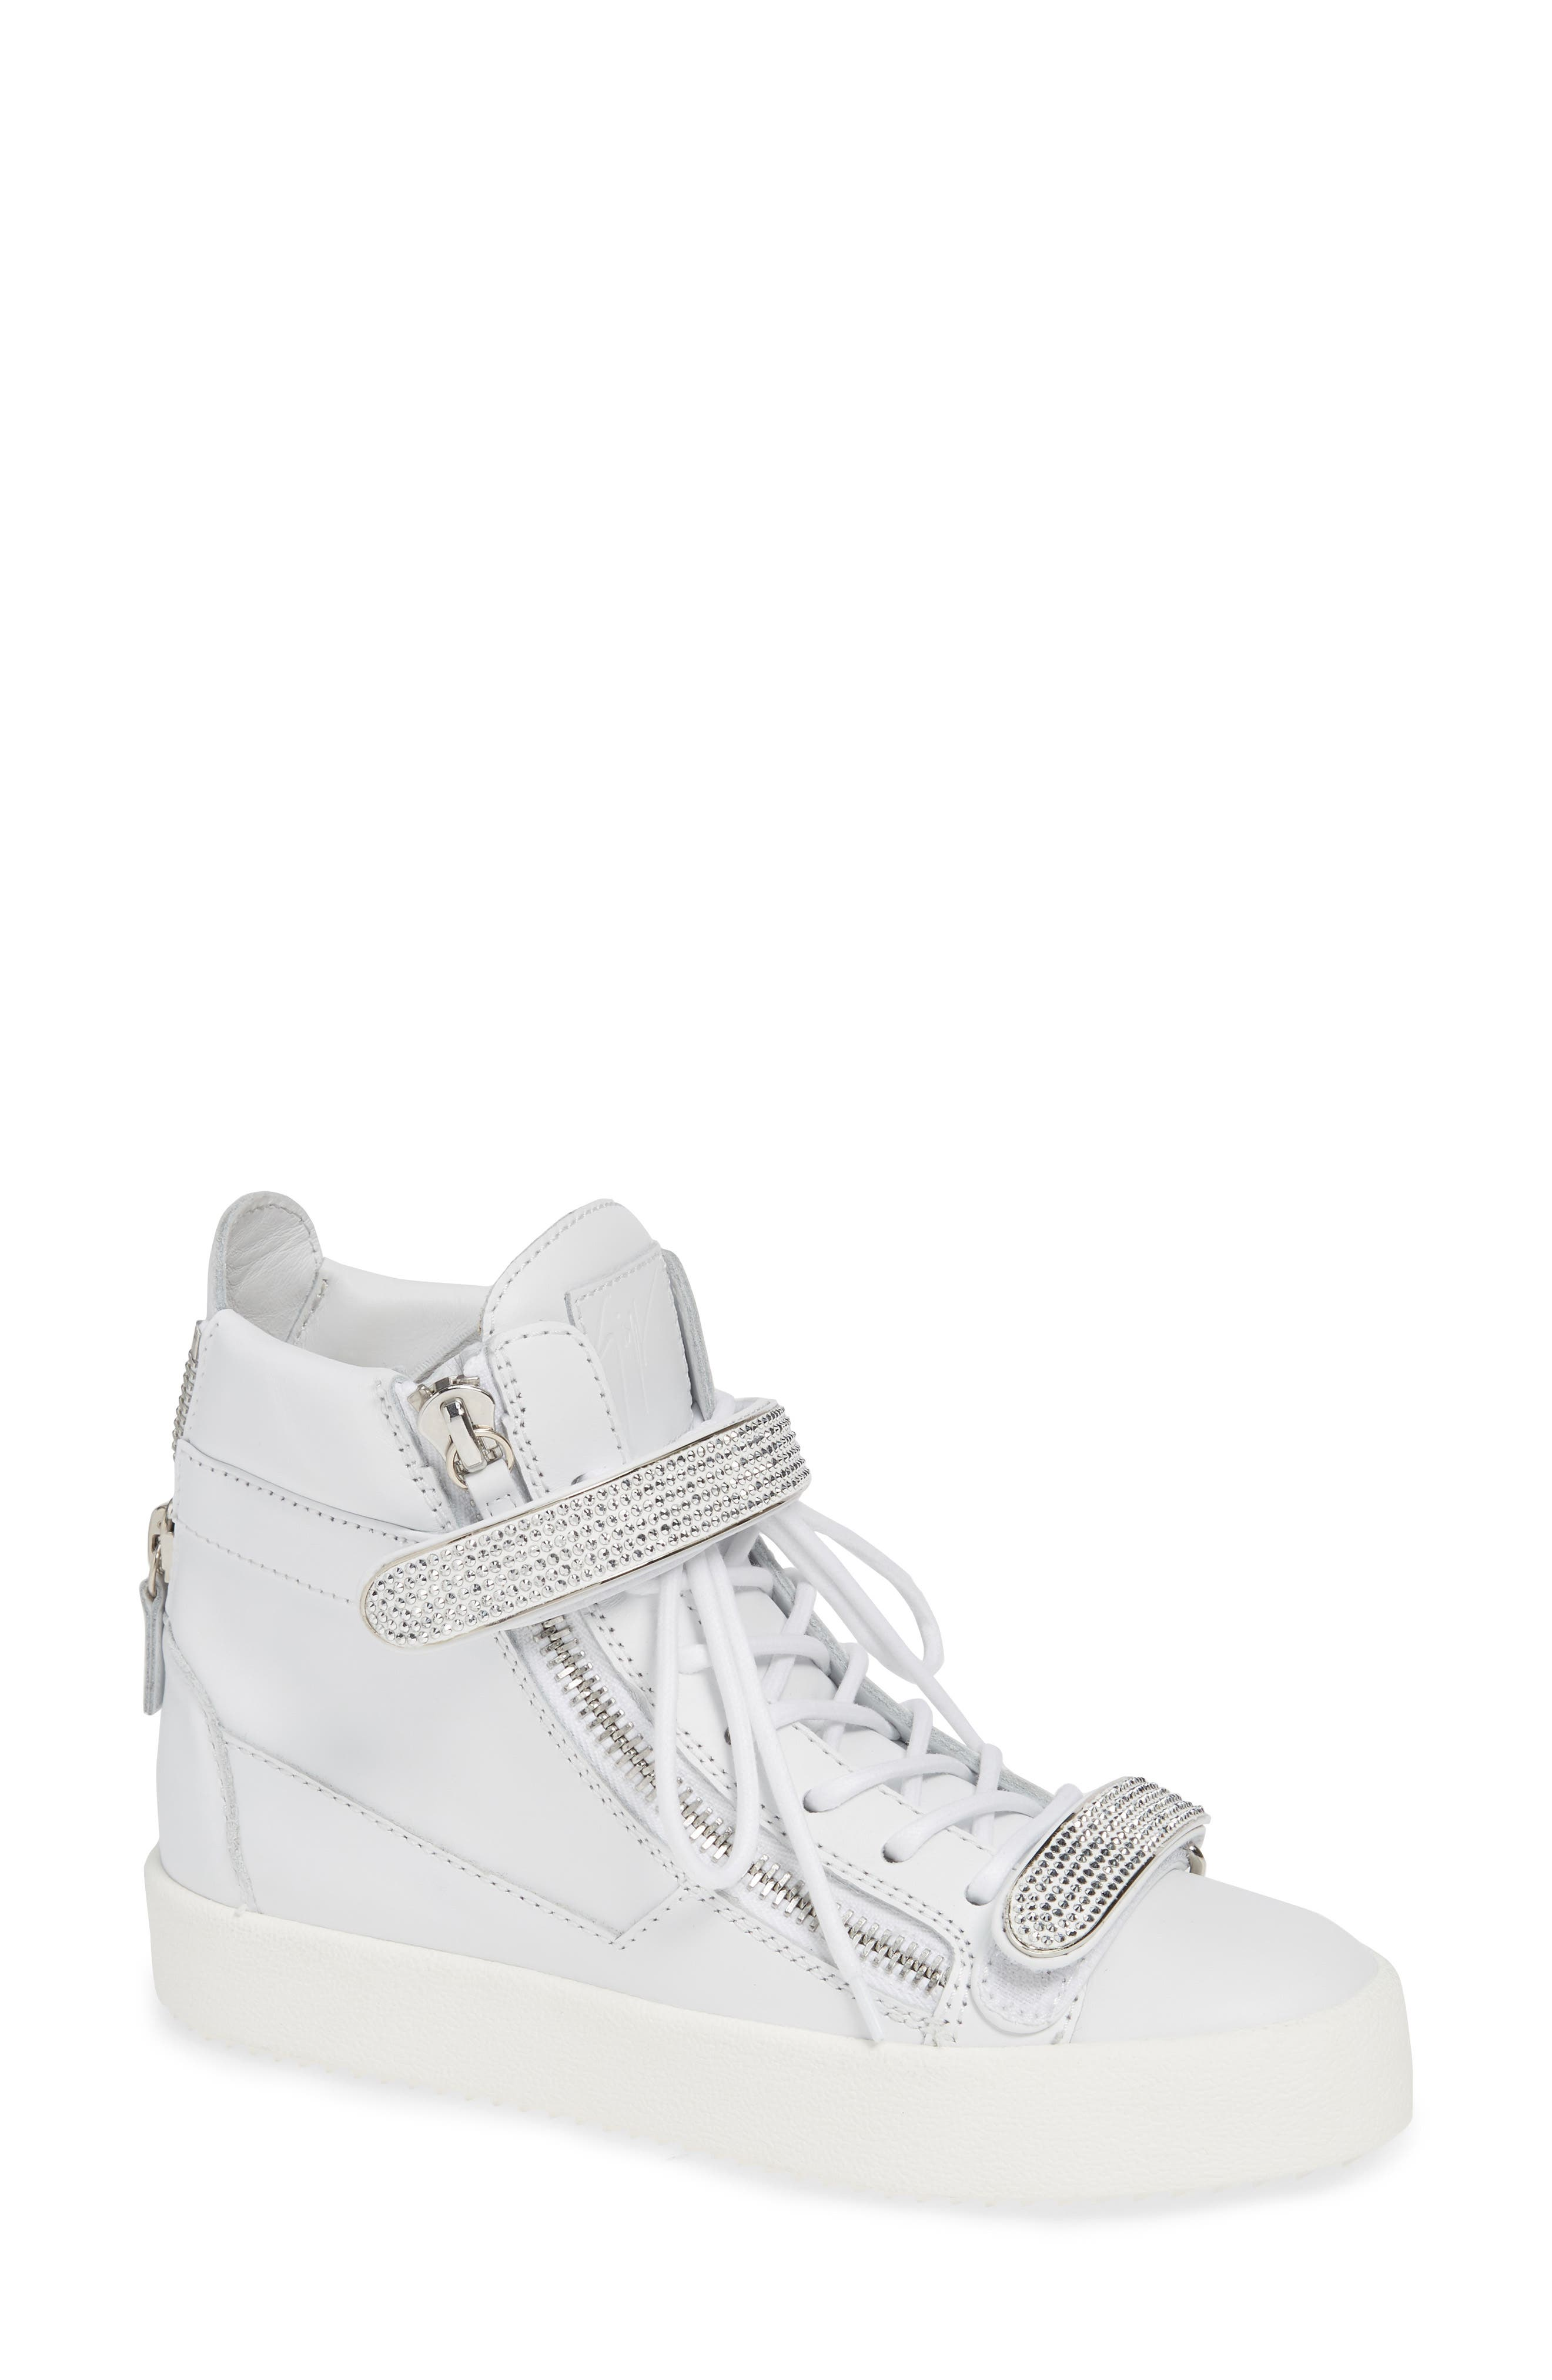 May London Jewel Wedge Sneaker in White